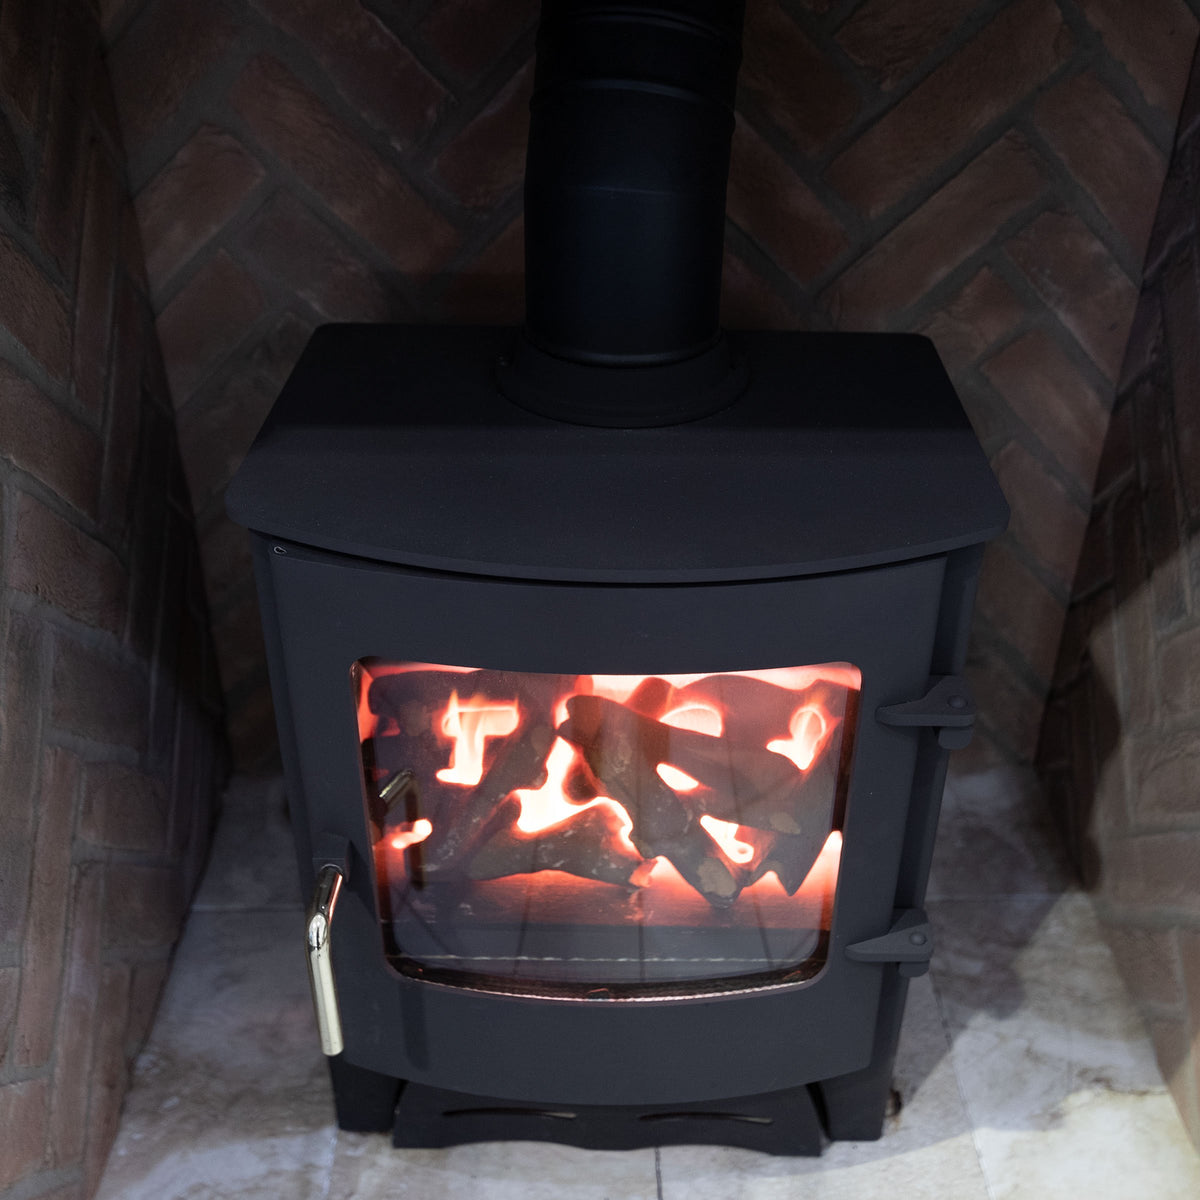 The Kirkdale Gas Stove | The Architectural Forum